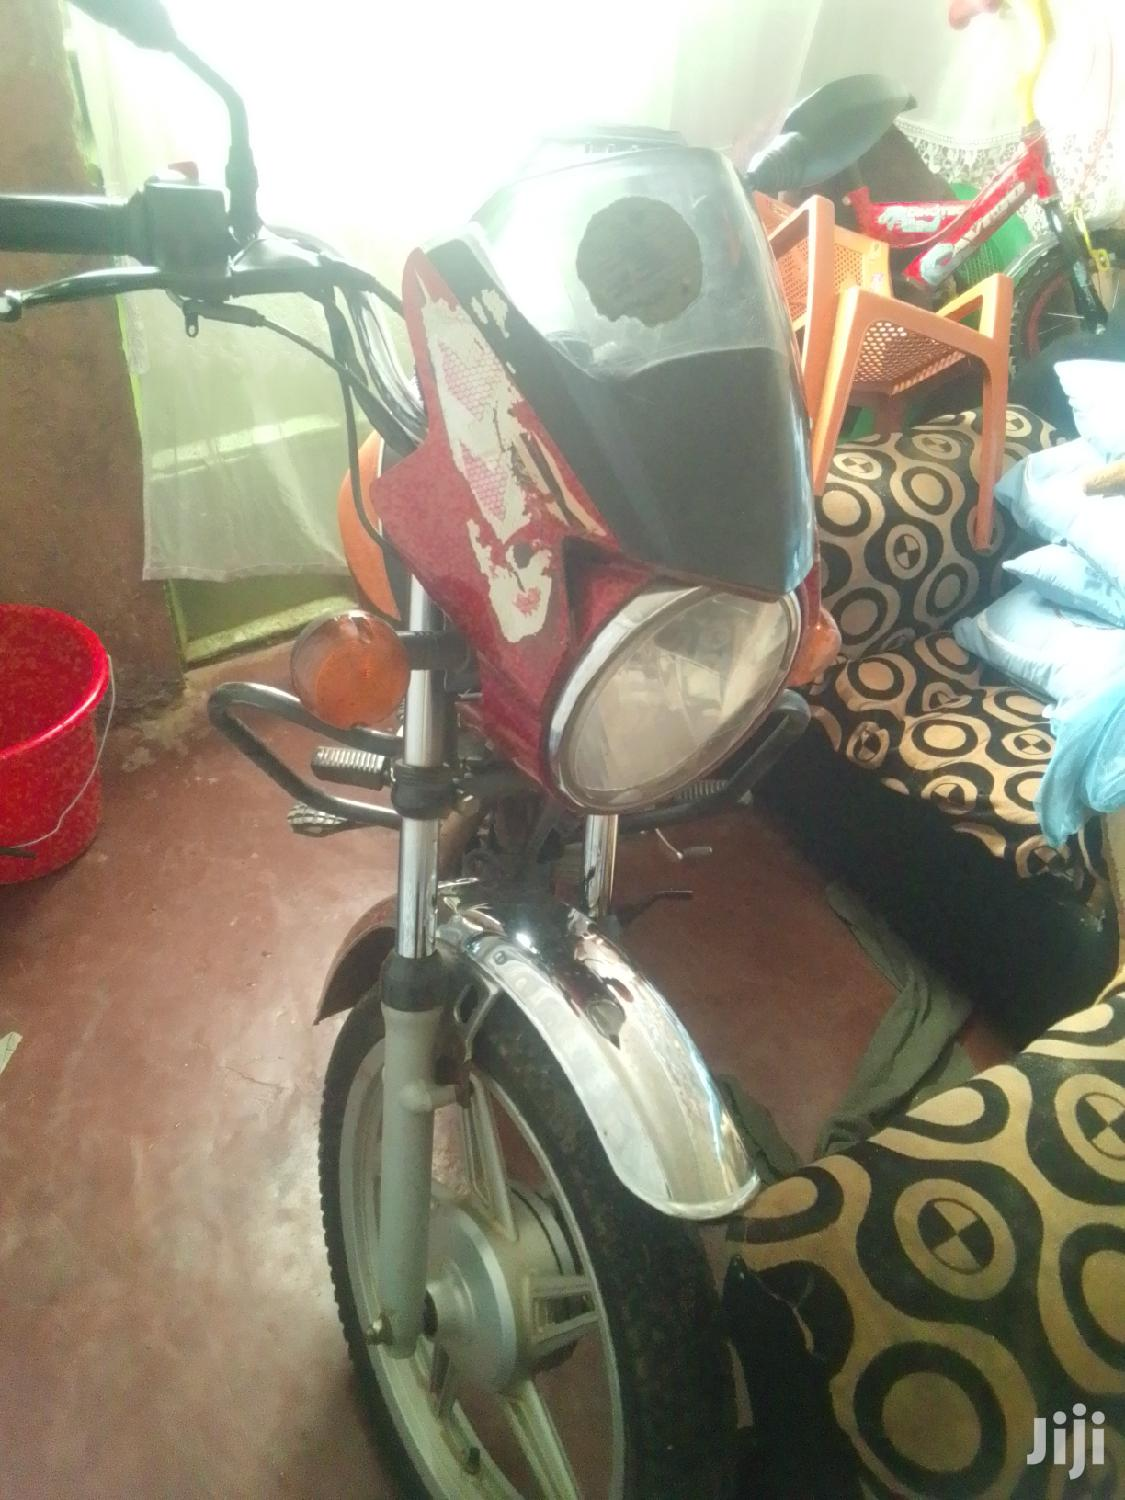 Archive: TVS Apache 180 RTR 2018 Red